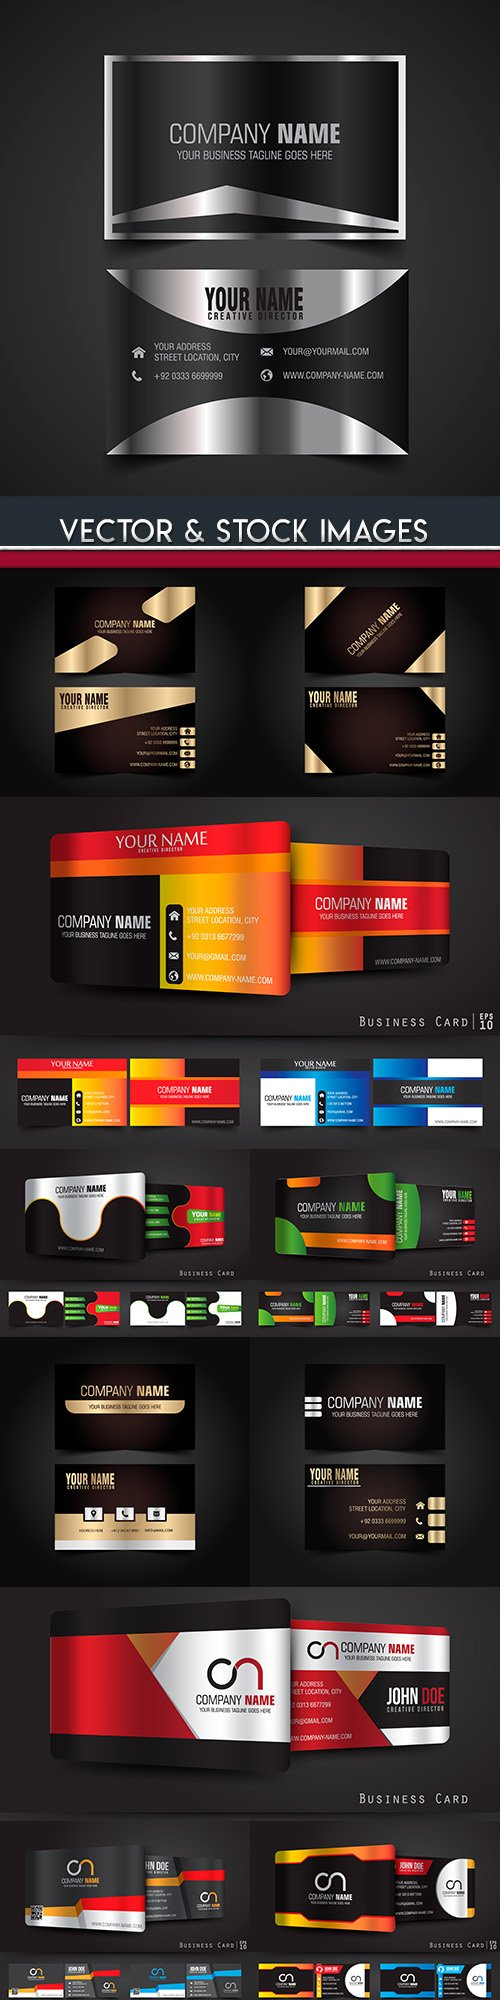 Business card templates dark design collection 38